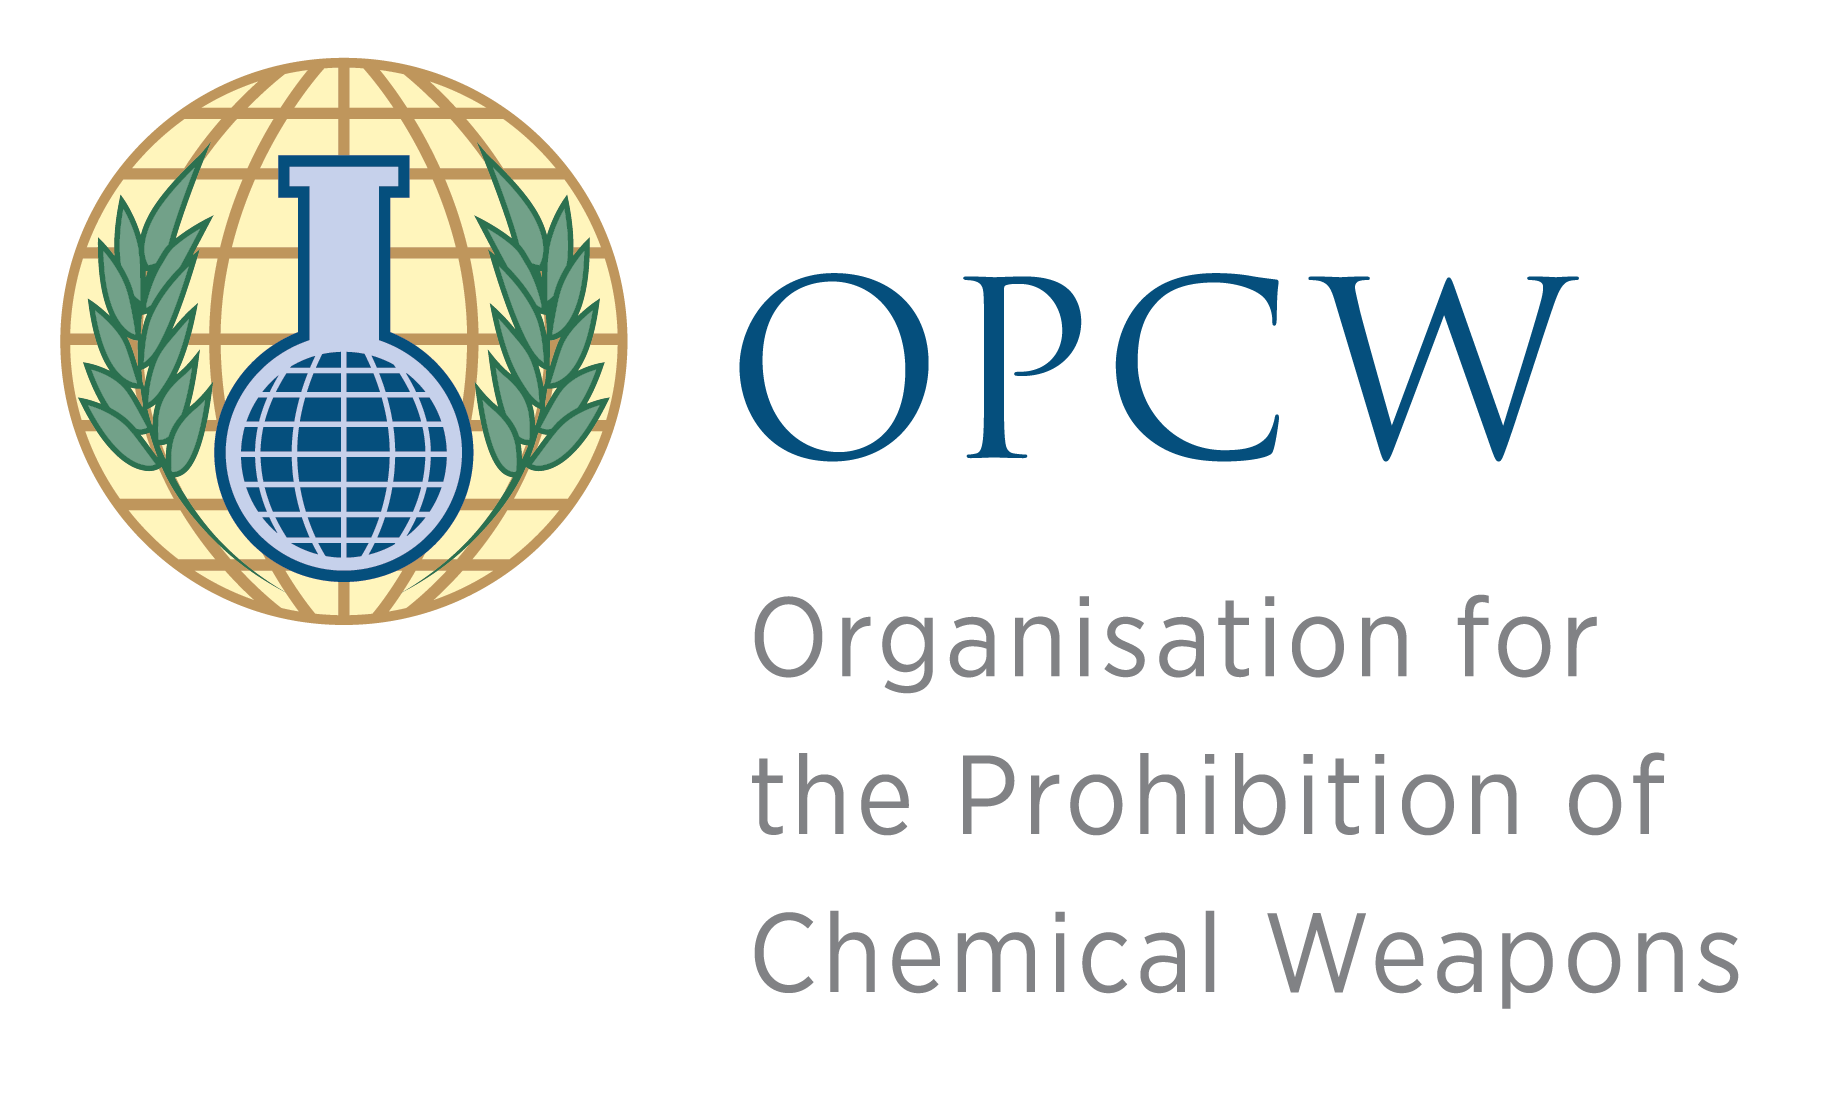 OPCW Signature - Full Stacked - RGB